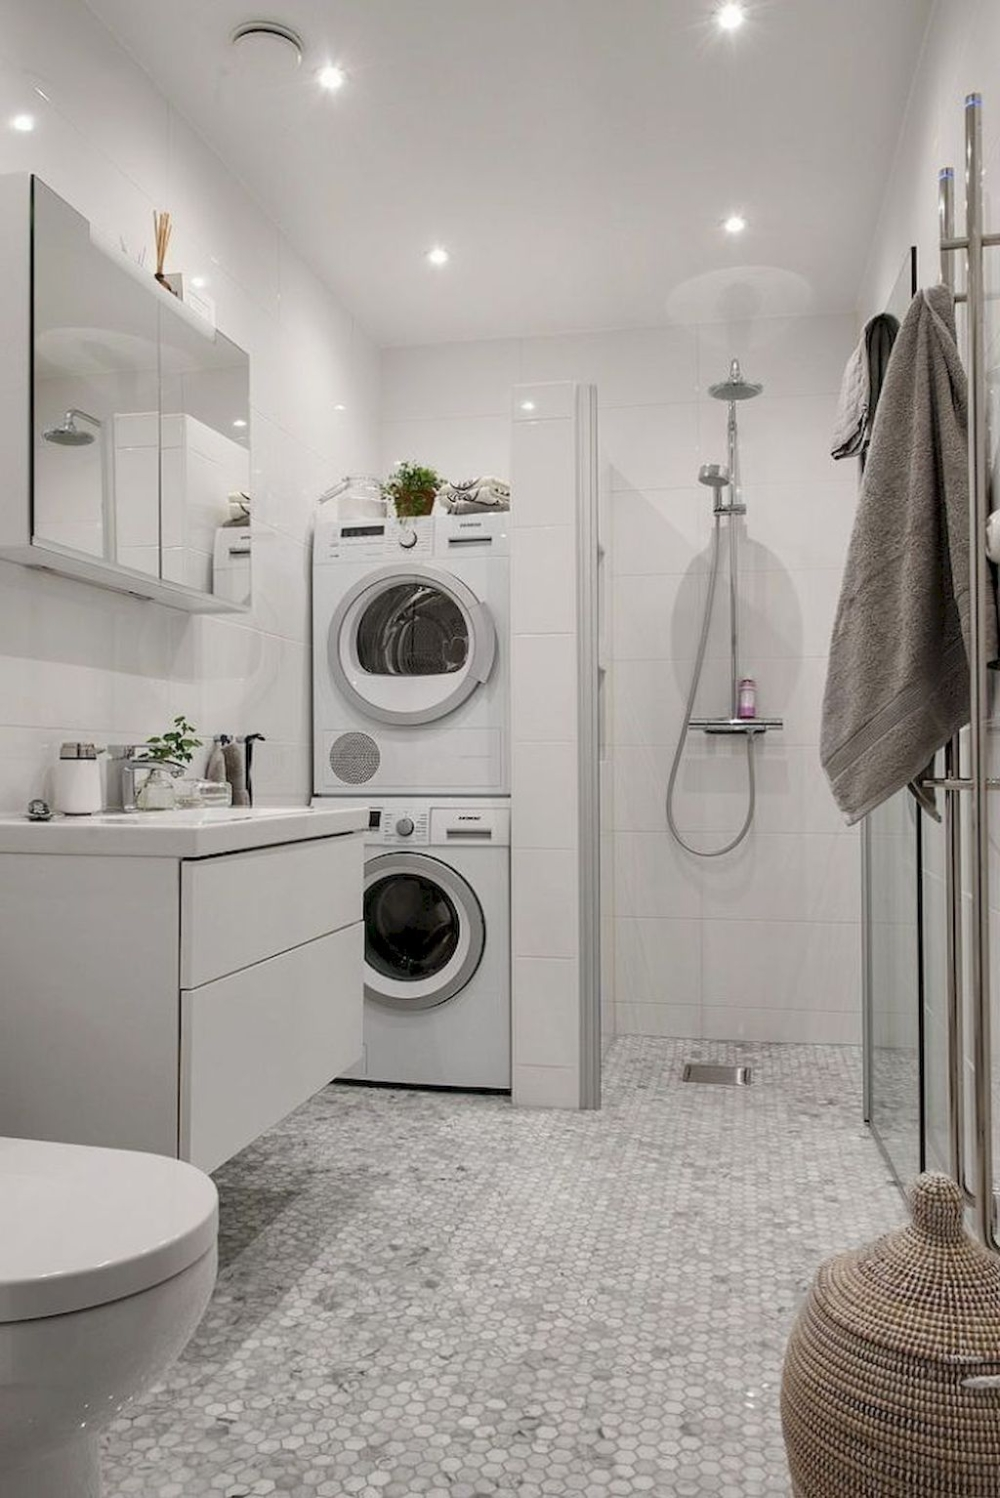 10 Bathroom Laundry Room Ideas 2020 (The Two In One Model 20+ Designs For Laundry Room Bathroom Combination Ideas